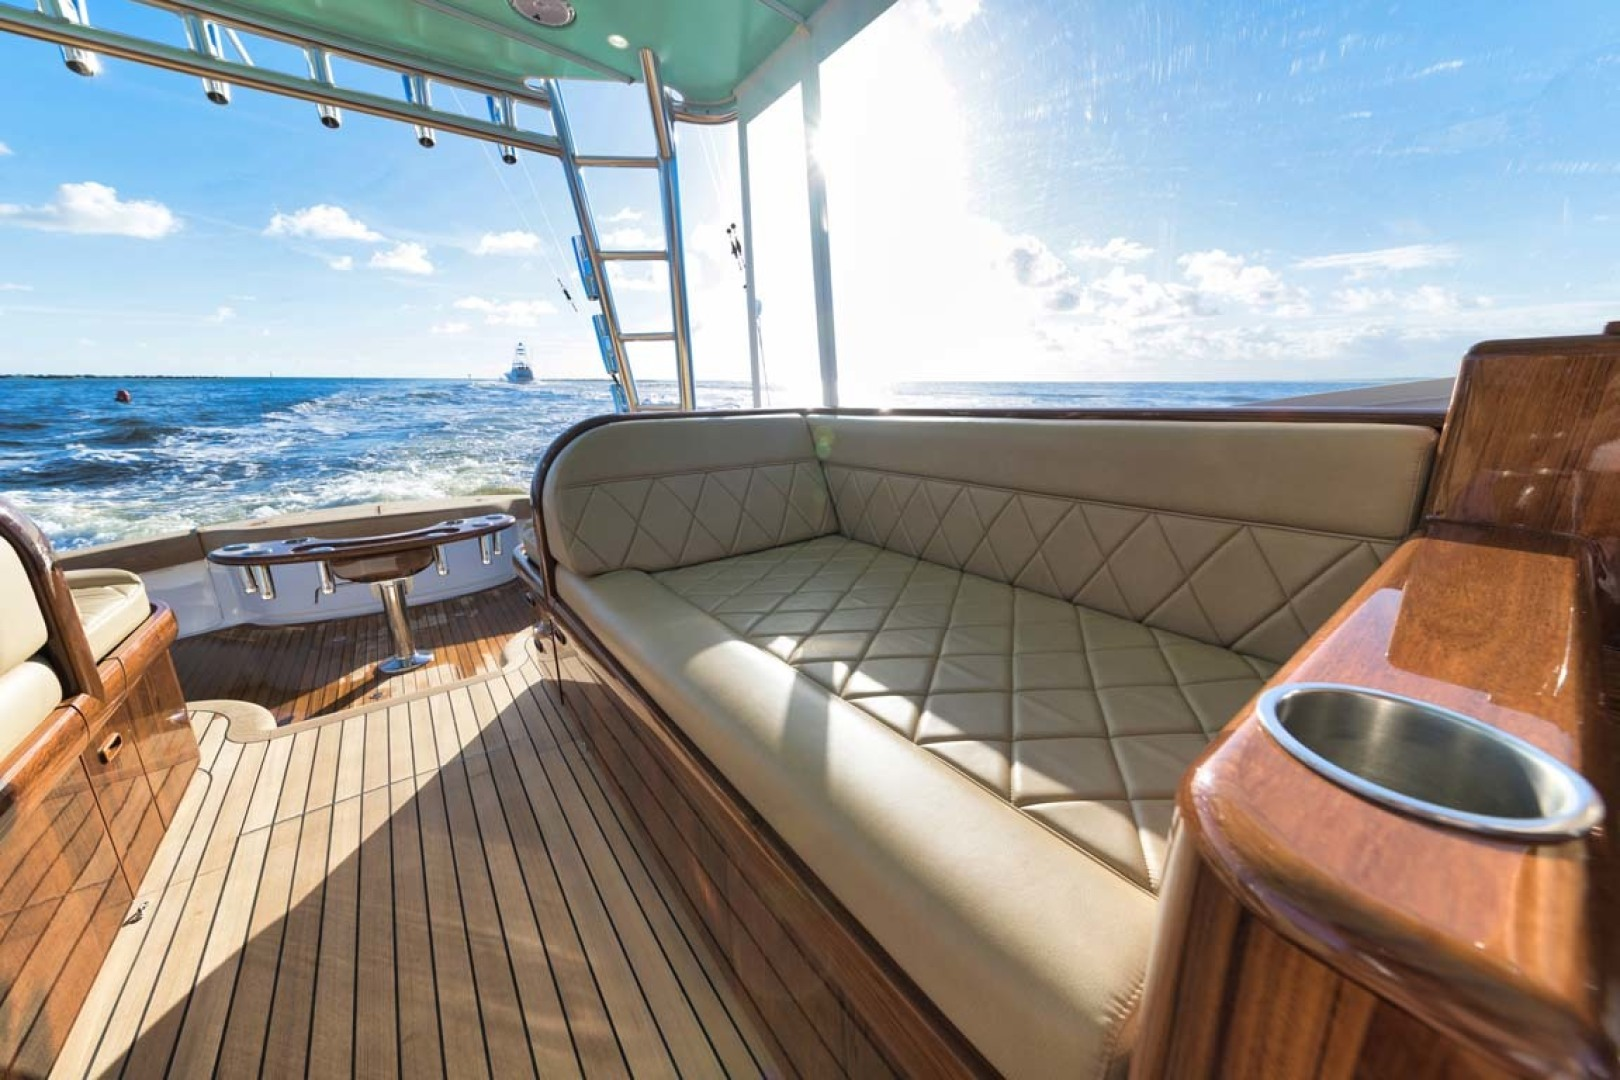 Winter Custom Yachts-46 Walkaround 2019-Family Circus Stuart-Florida-United States-Teak Port Seating with Diamond Stitched Ultra-Leather Upholstery and Storage Below-1563763 | Thumbnail